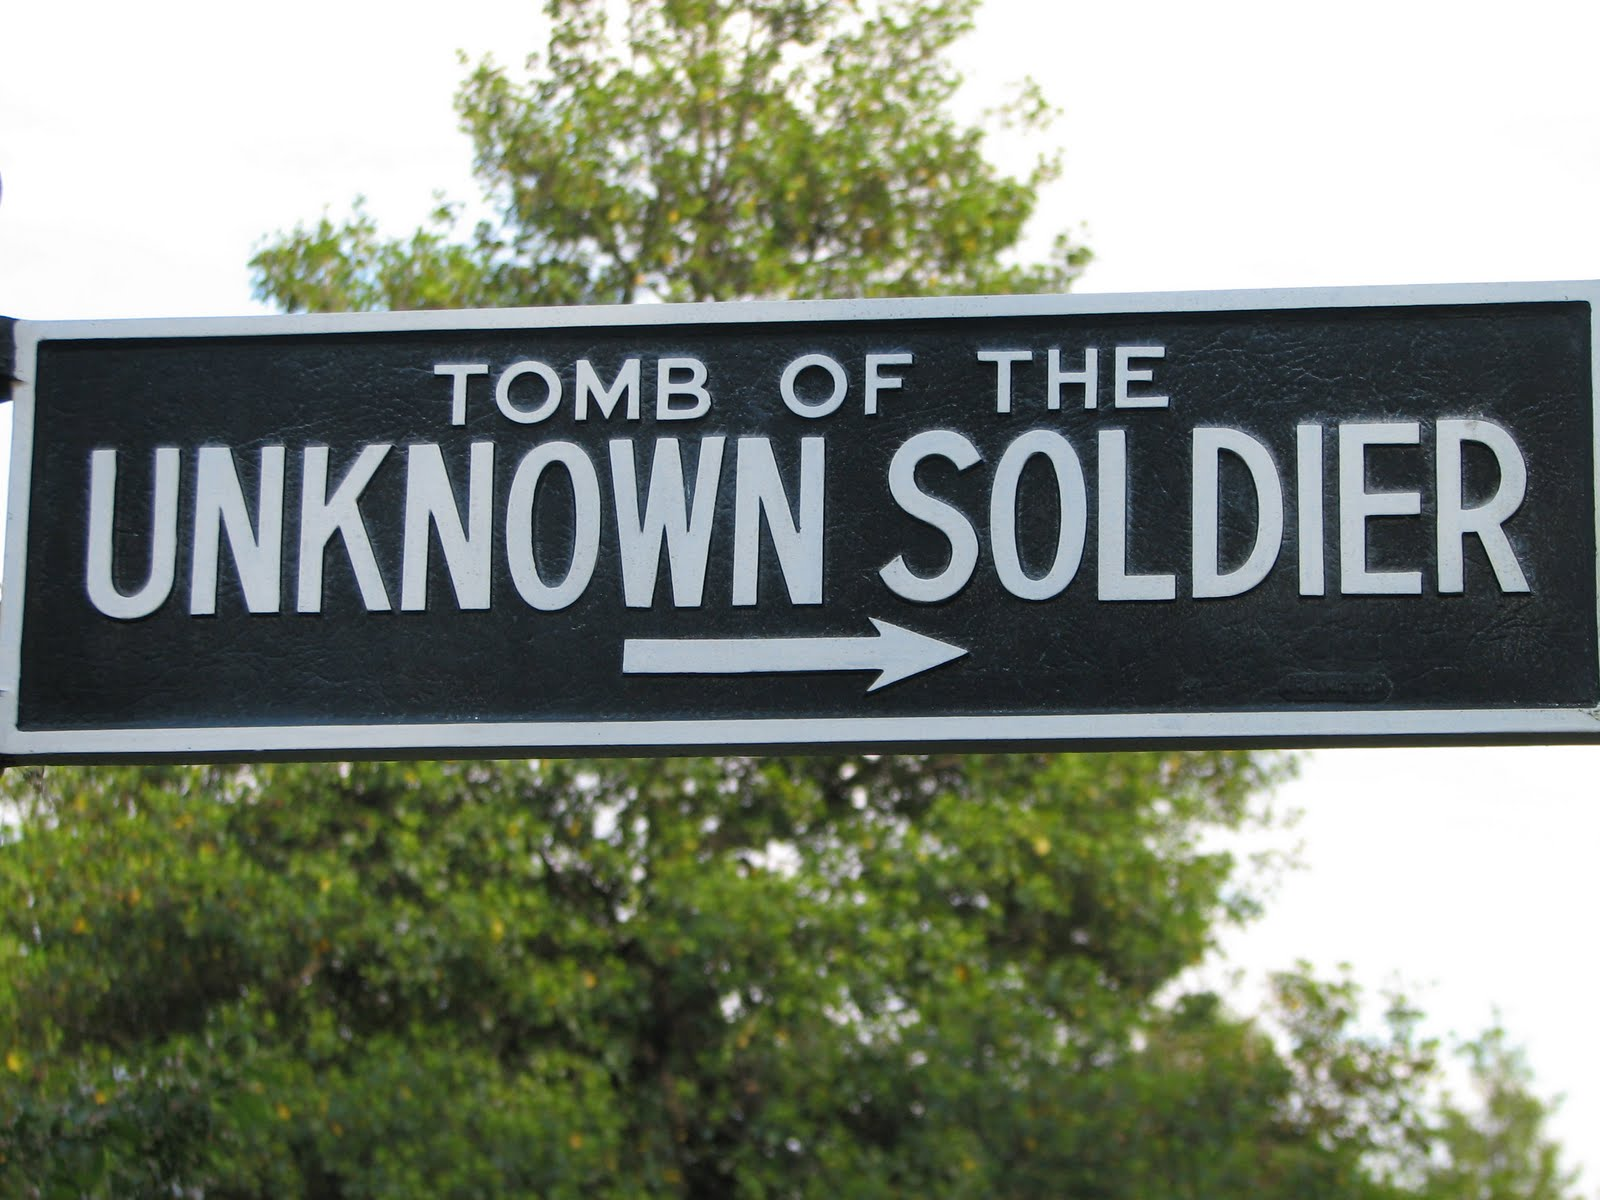 I have to write an essay about unknown soldiers (tomb, etc...) what should I write?